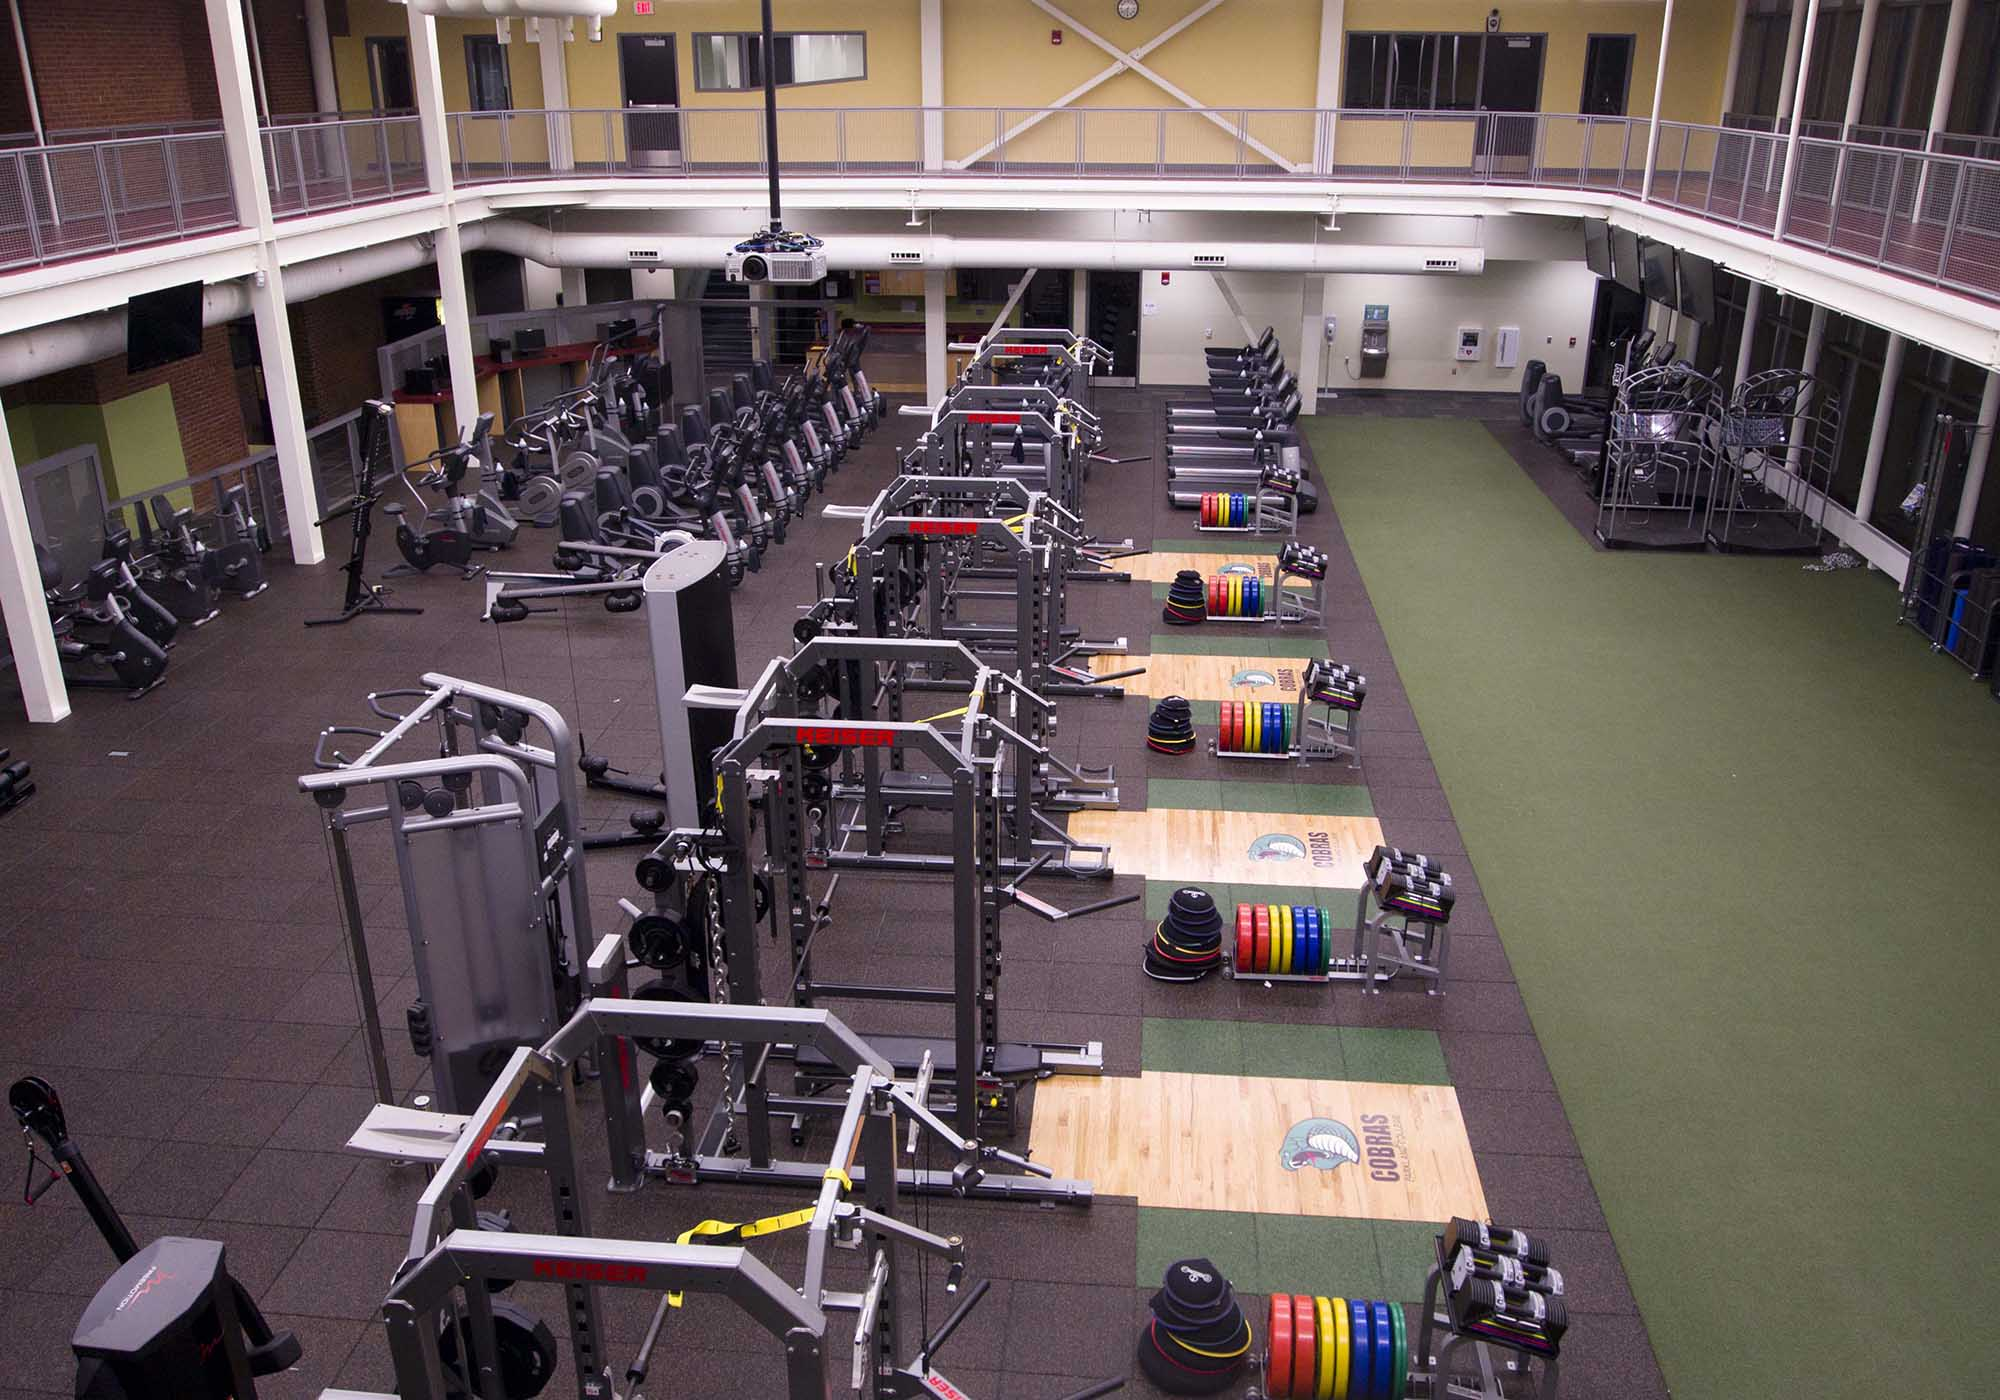 Fitness Center equiptment